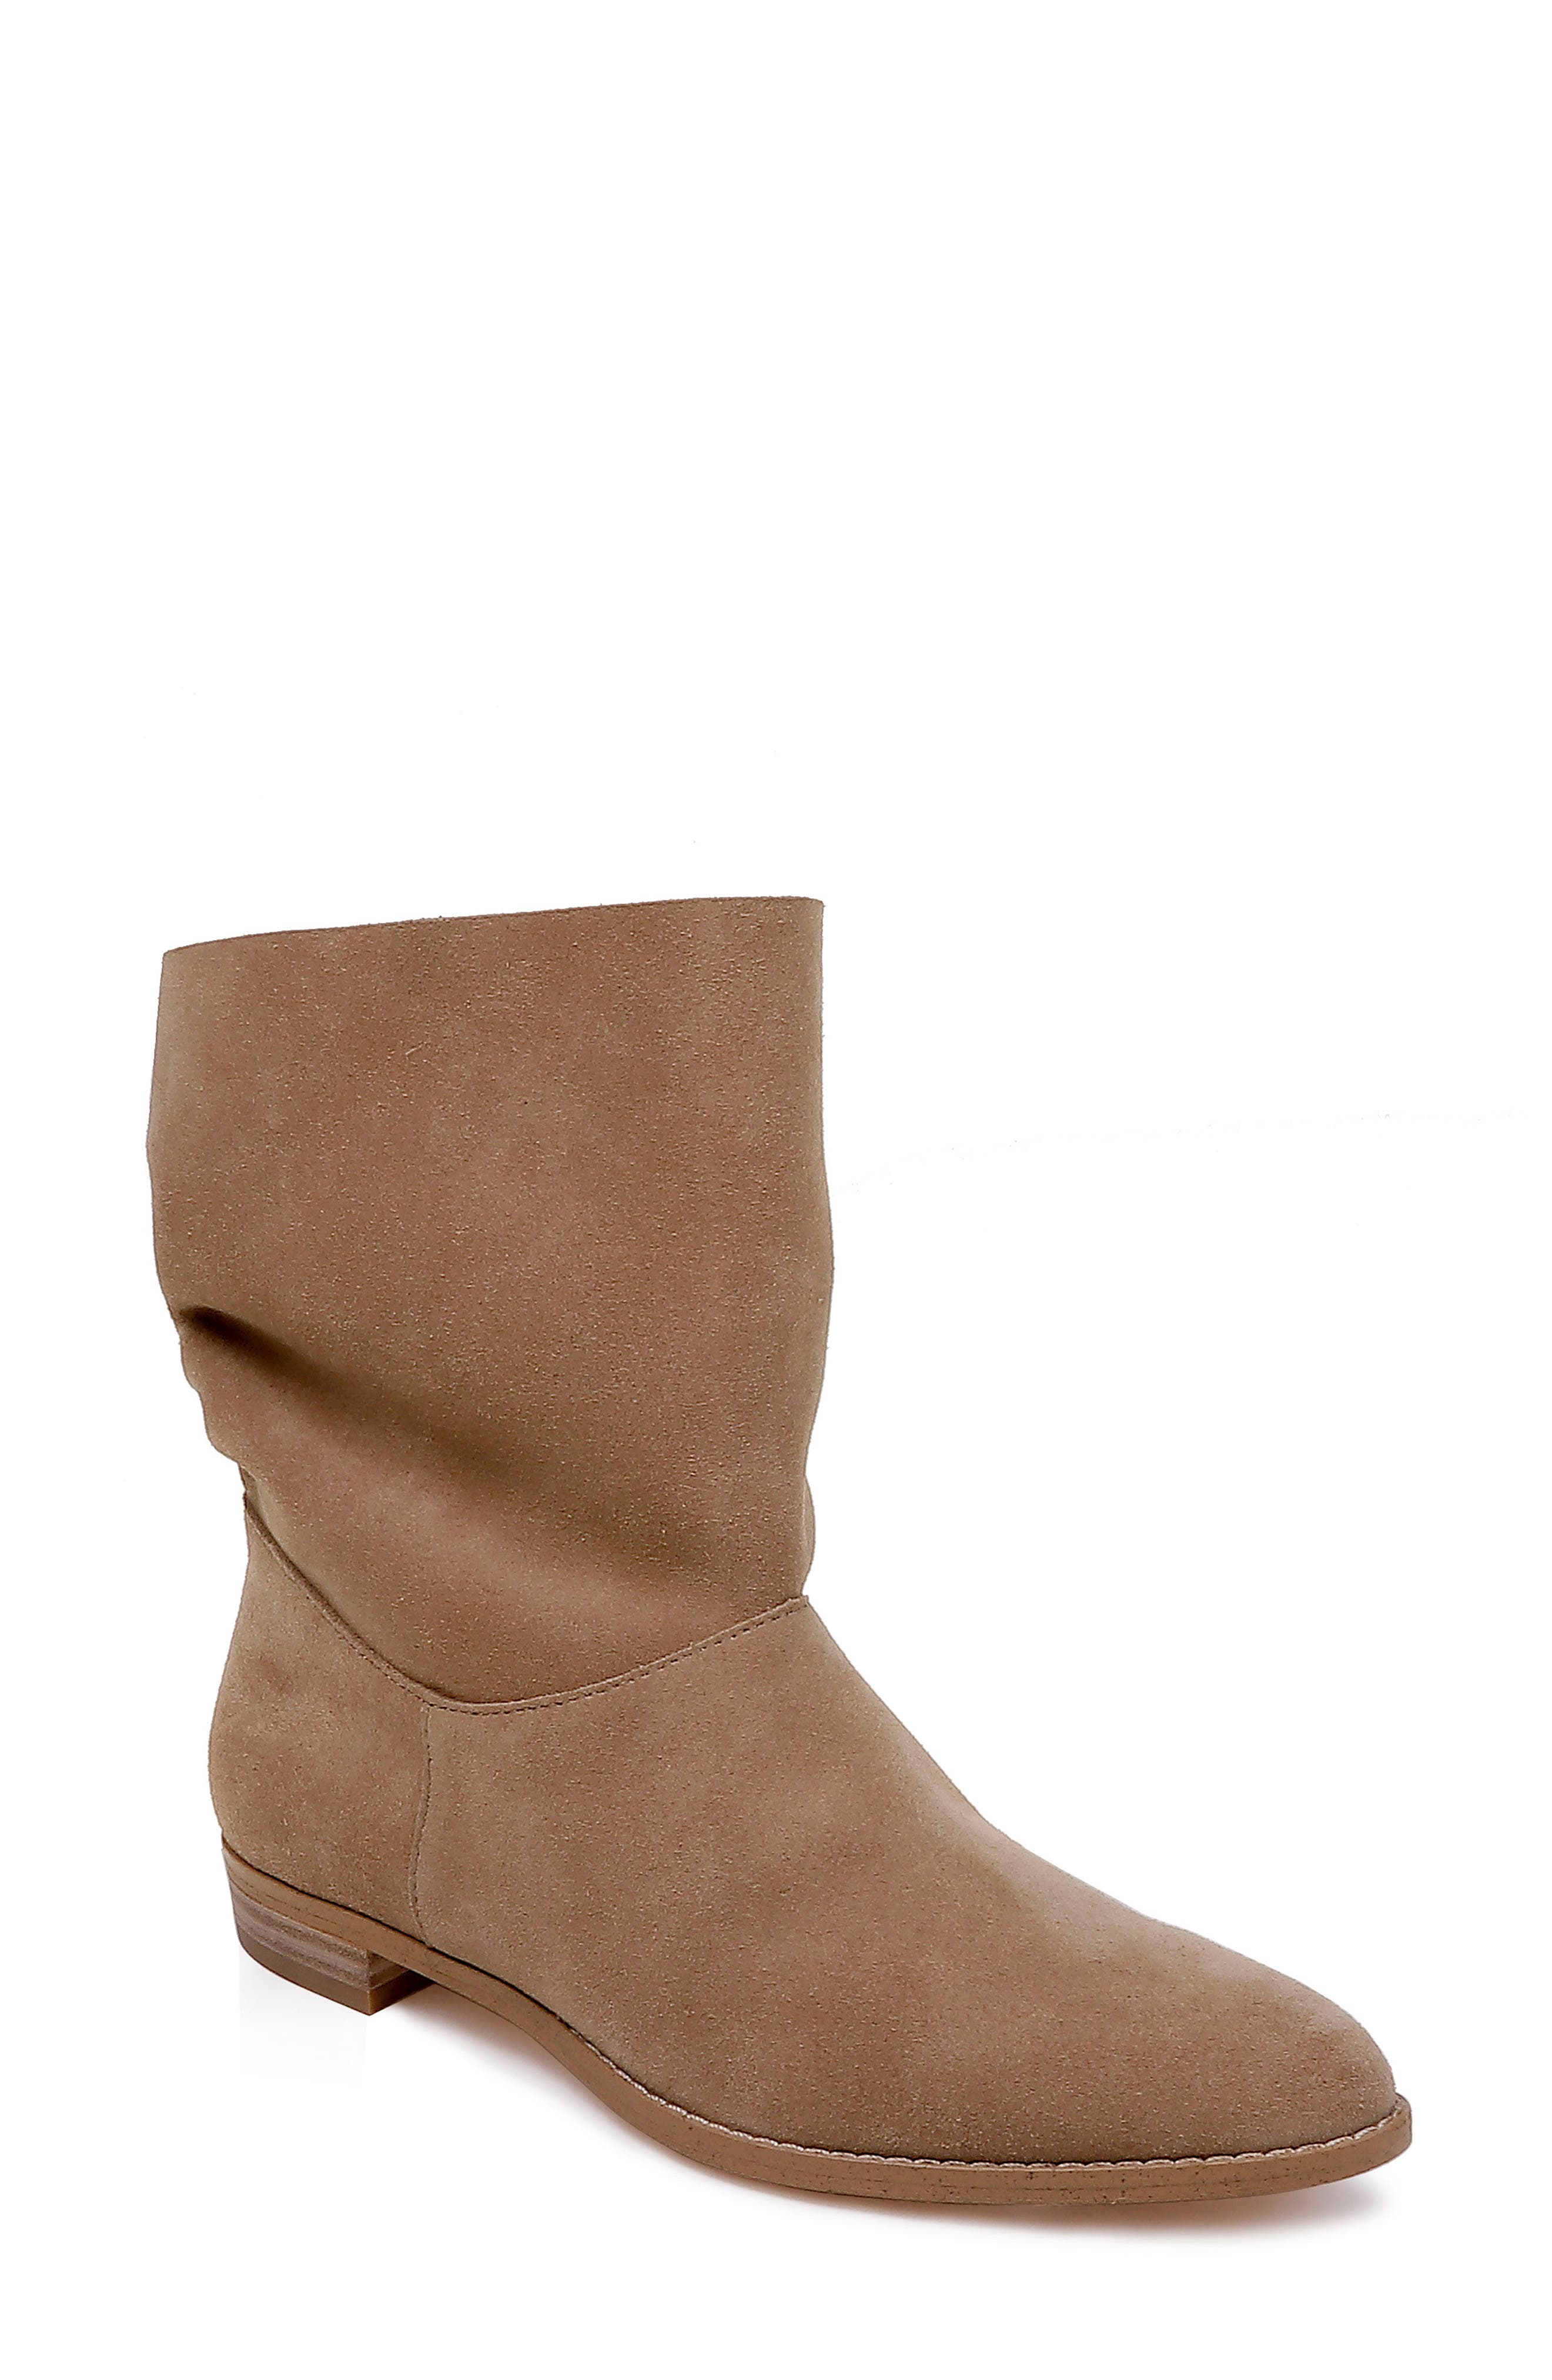 Claudia Slouch Bootie,                             Main thumbnail 1, color,                             OAT SUEDE